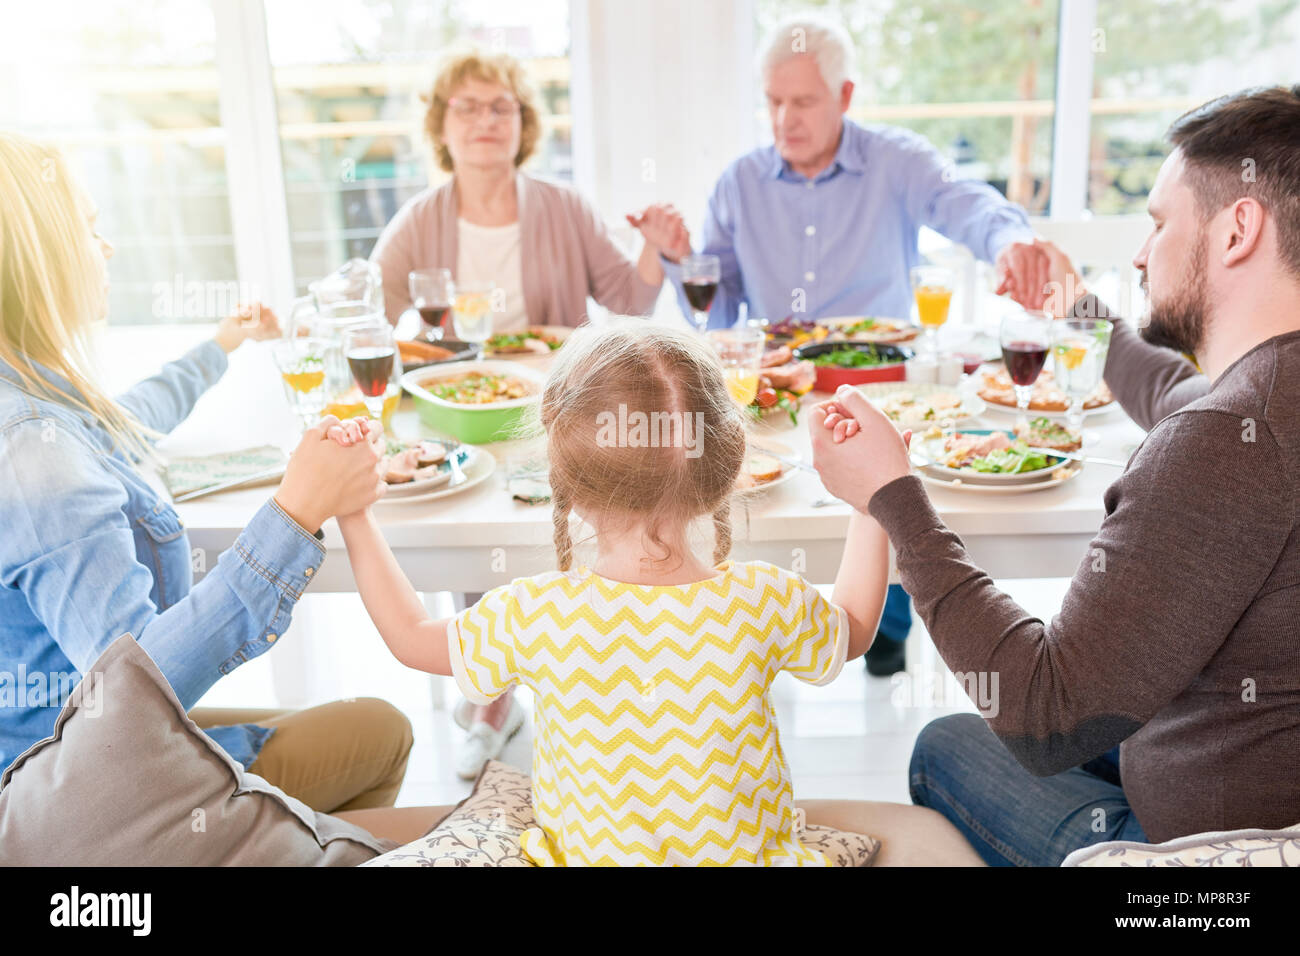 Family Praying at Family Dinner - Stock Image